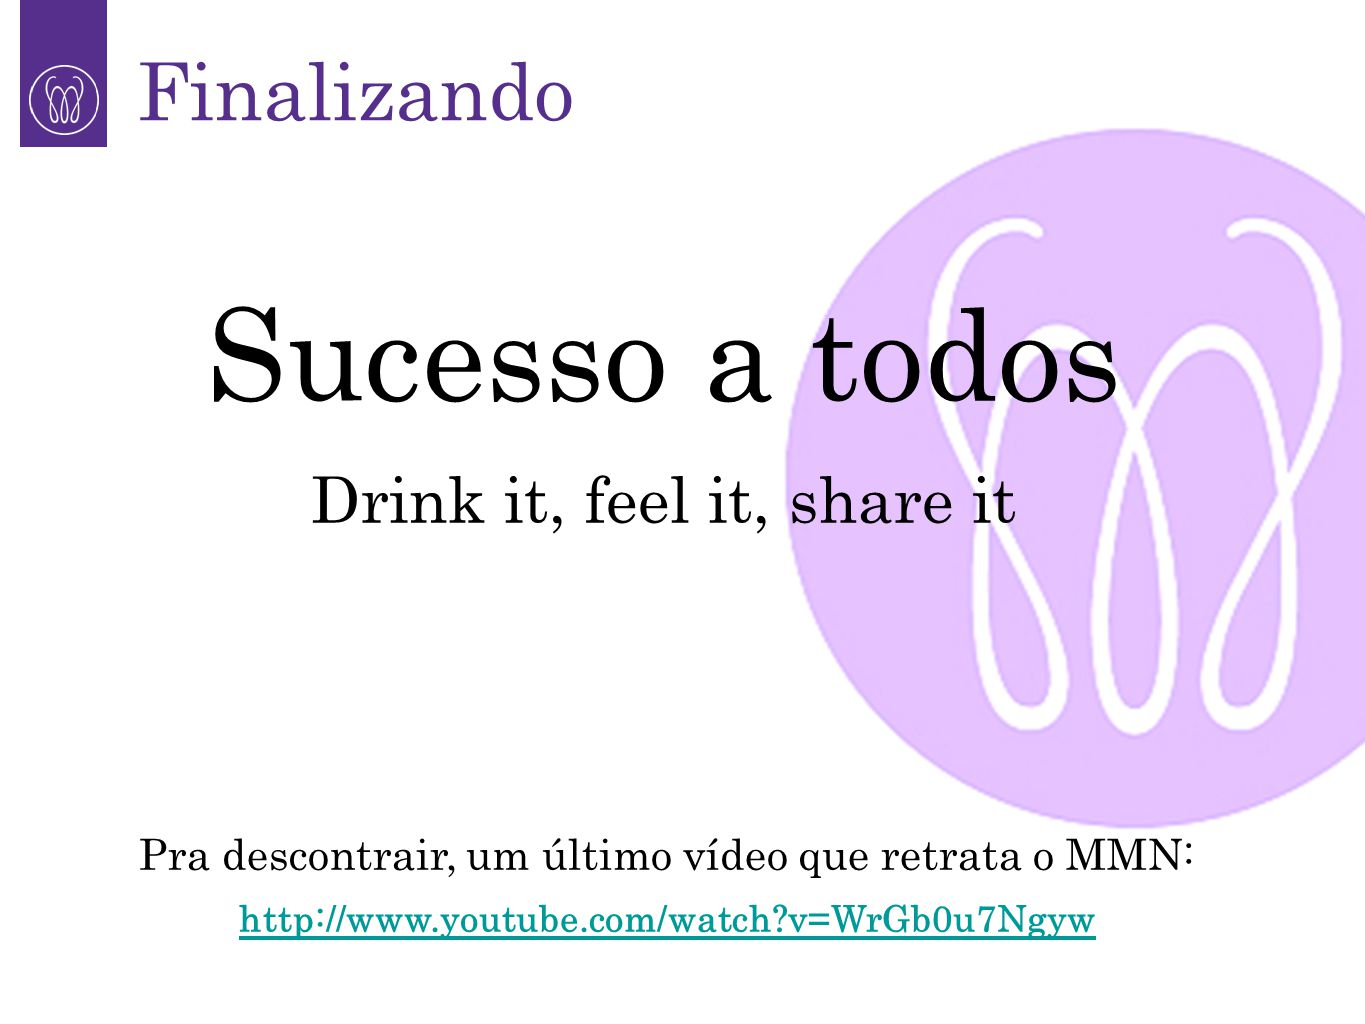 Sucesso a todos Finalizando Drink it, feel it, share it